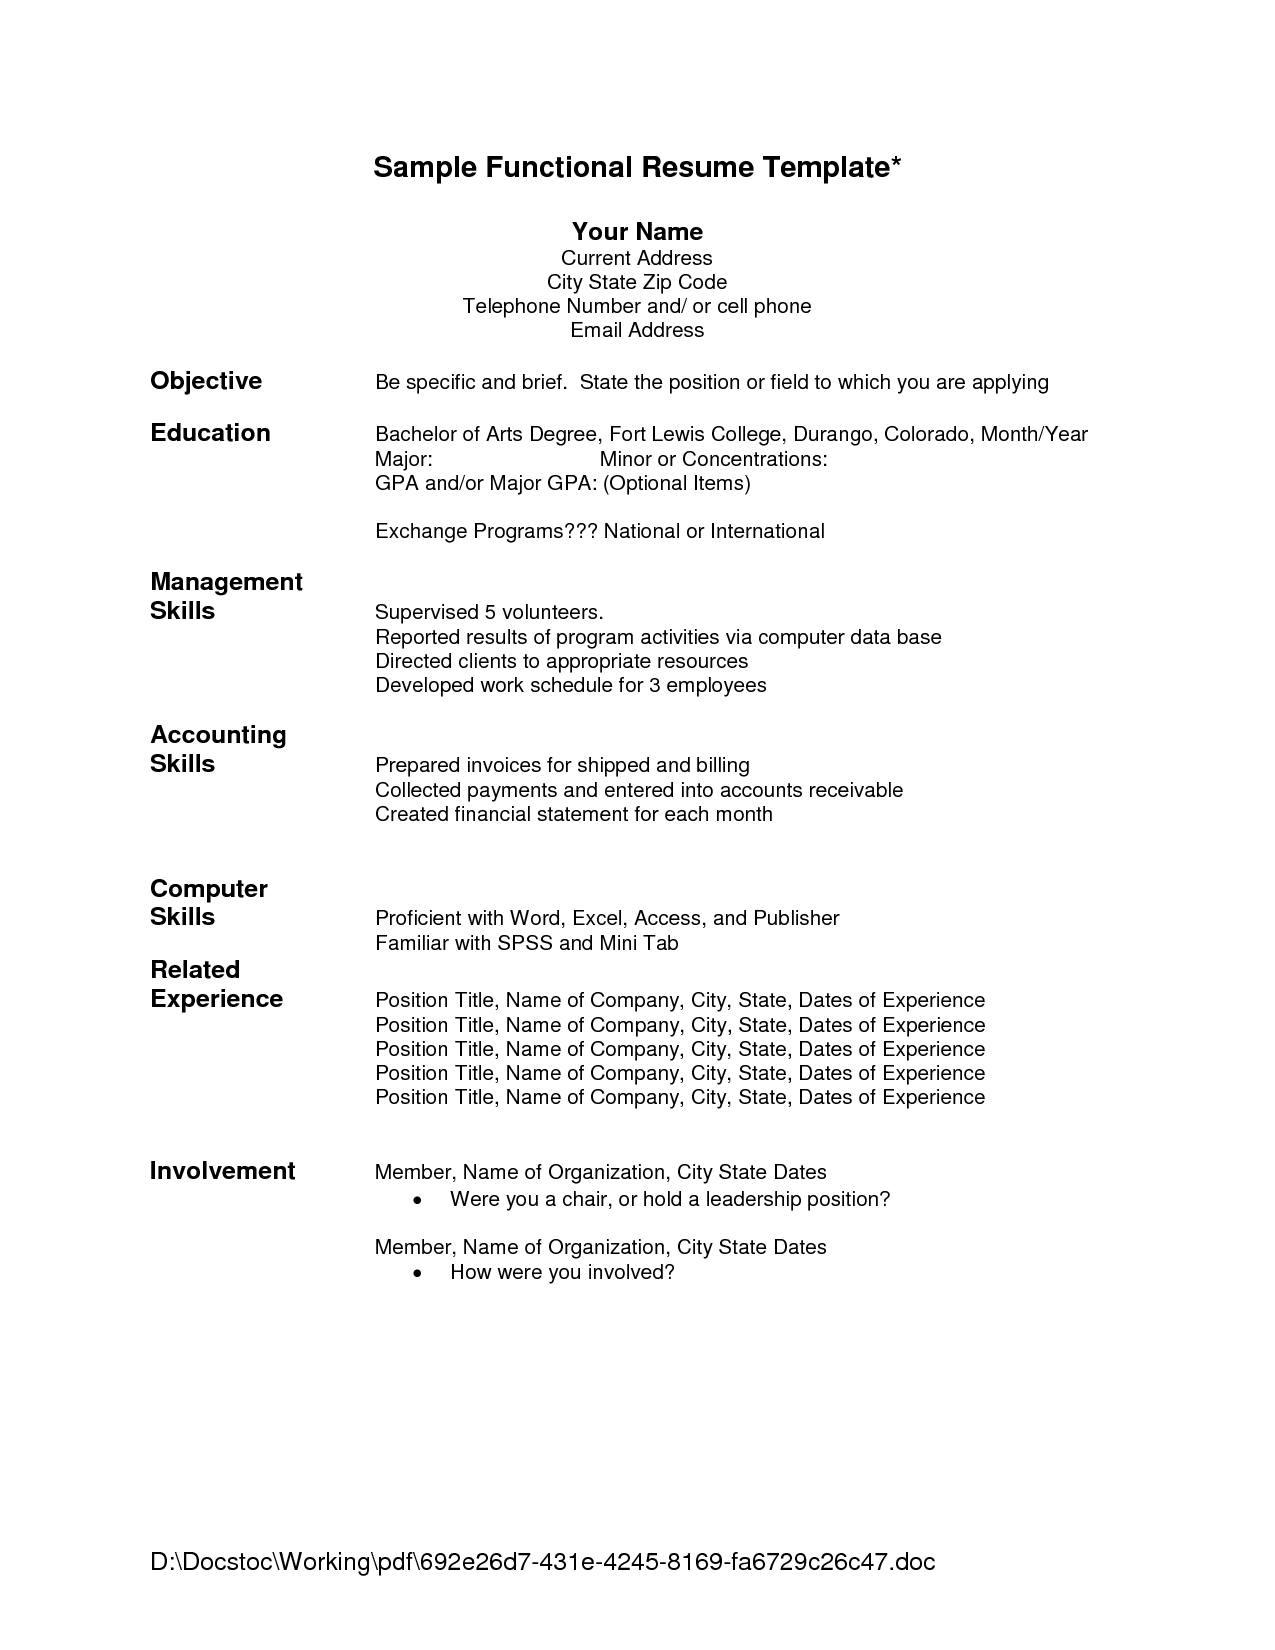 Functional Resume Samples Sample One Page Functional Resume  Google Search  Resumes